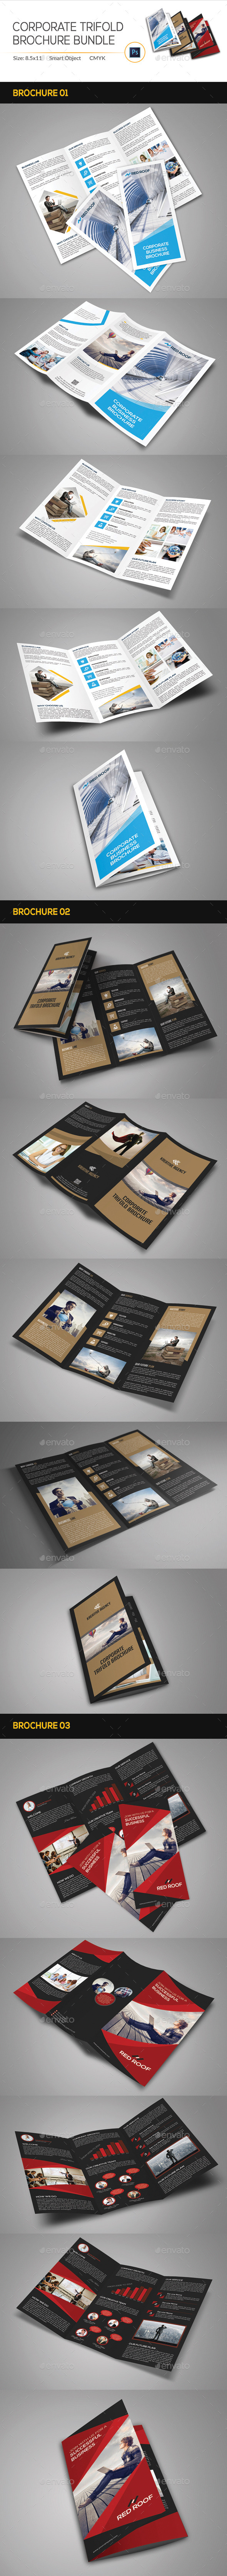 GraphicRiver Corporate Trifold Brochure Bundle 11392589